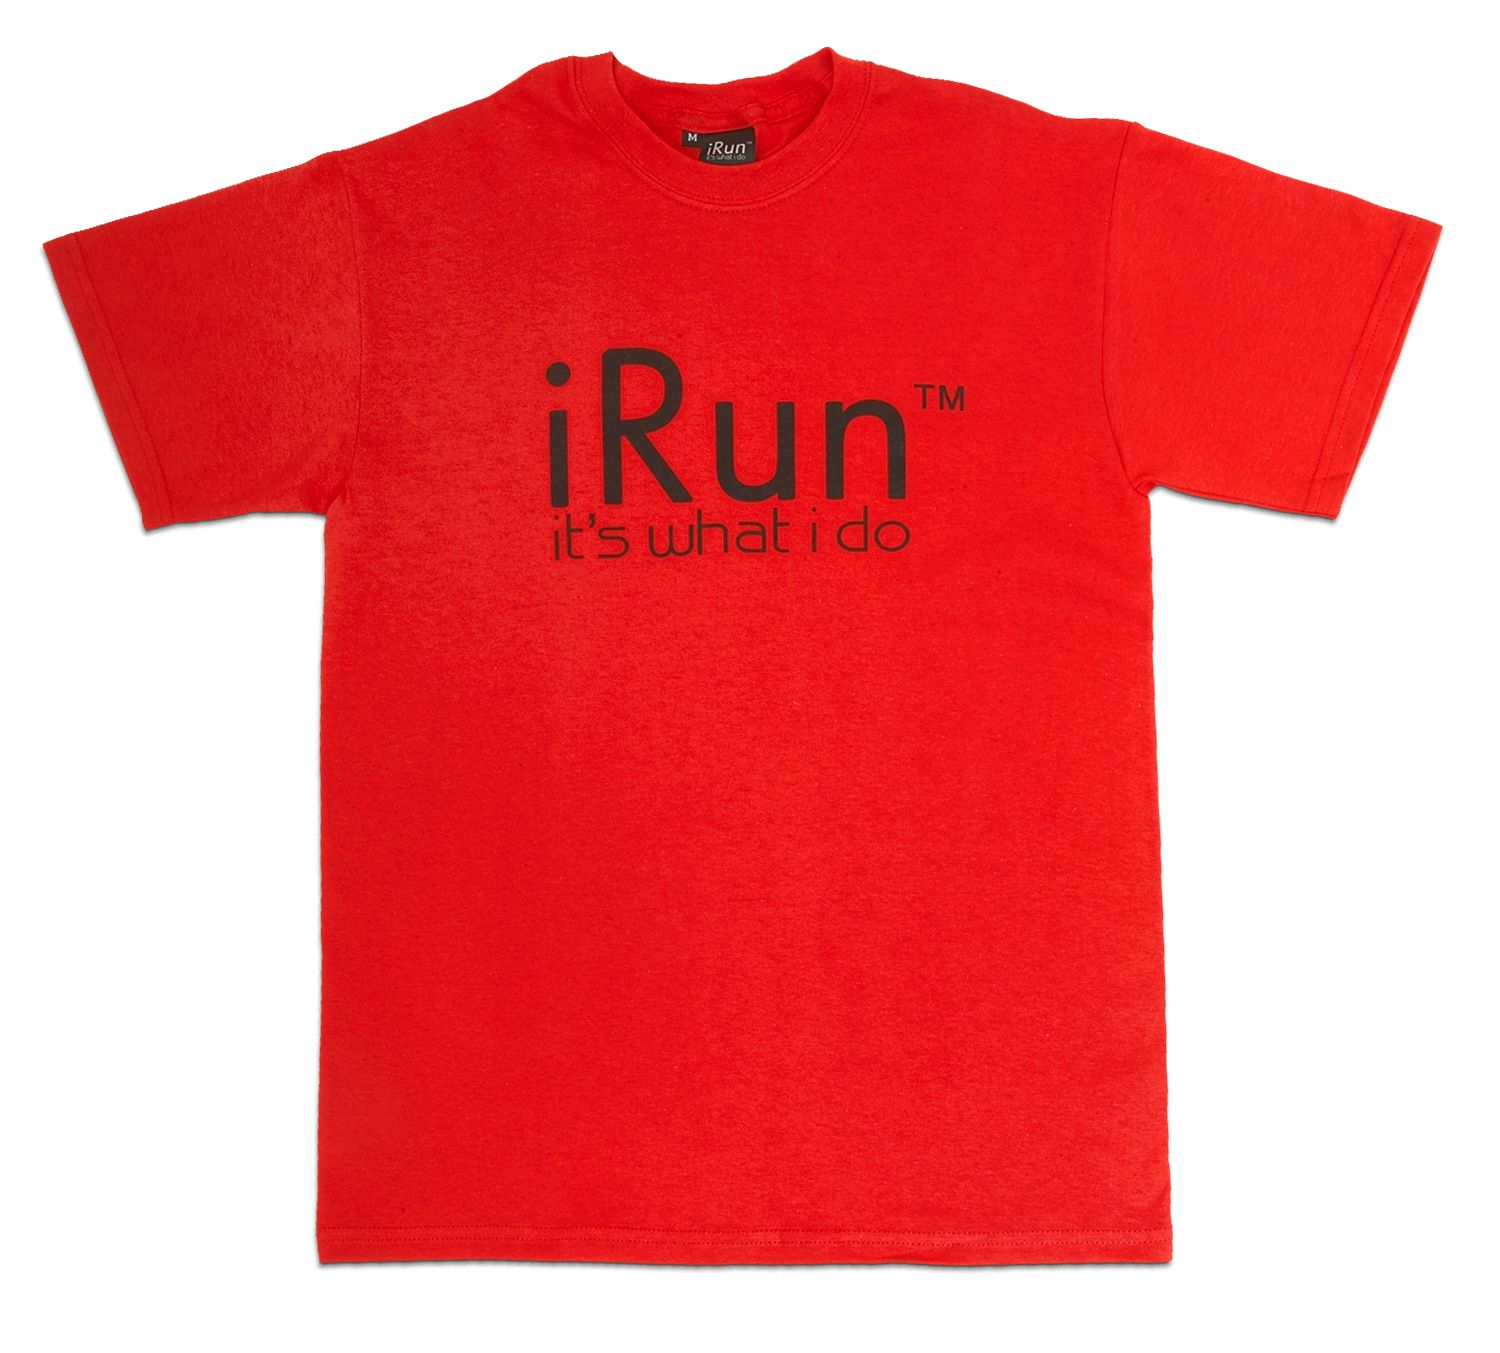 Irun t shirt red irun clothing company online store for The red t shirt company